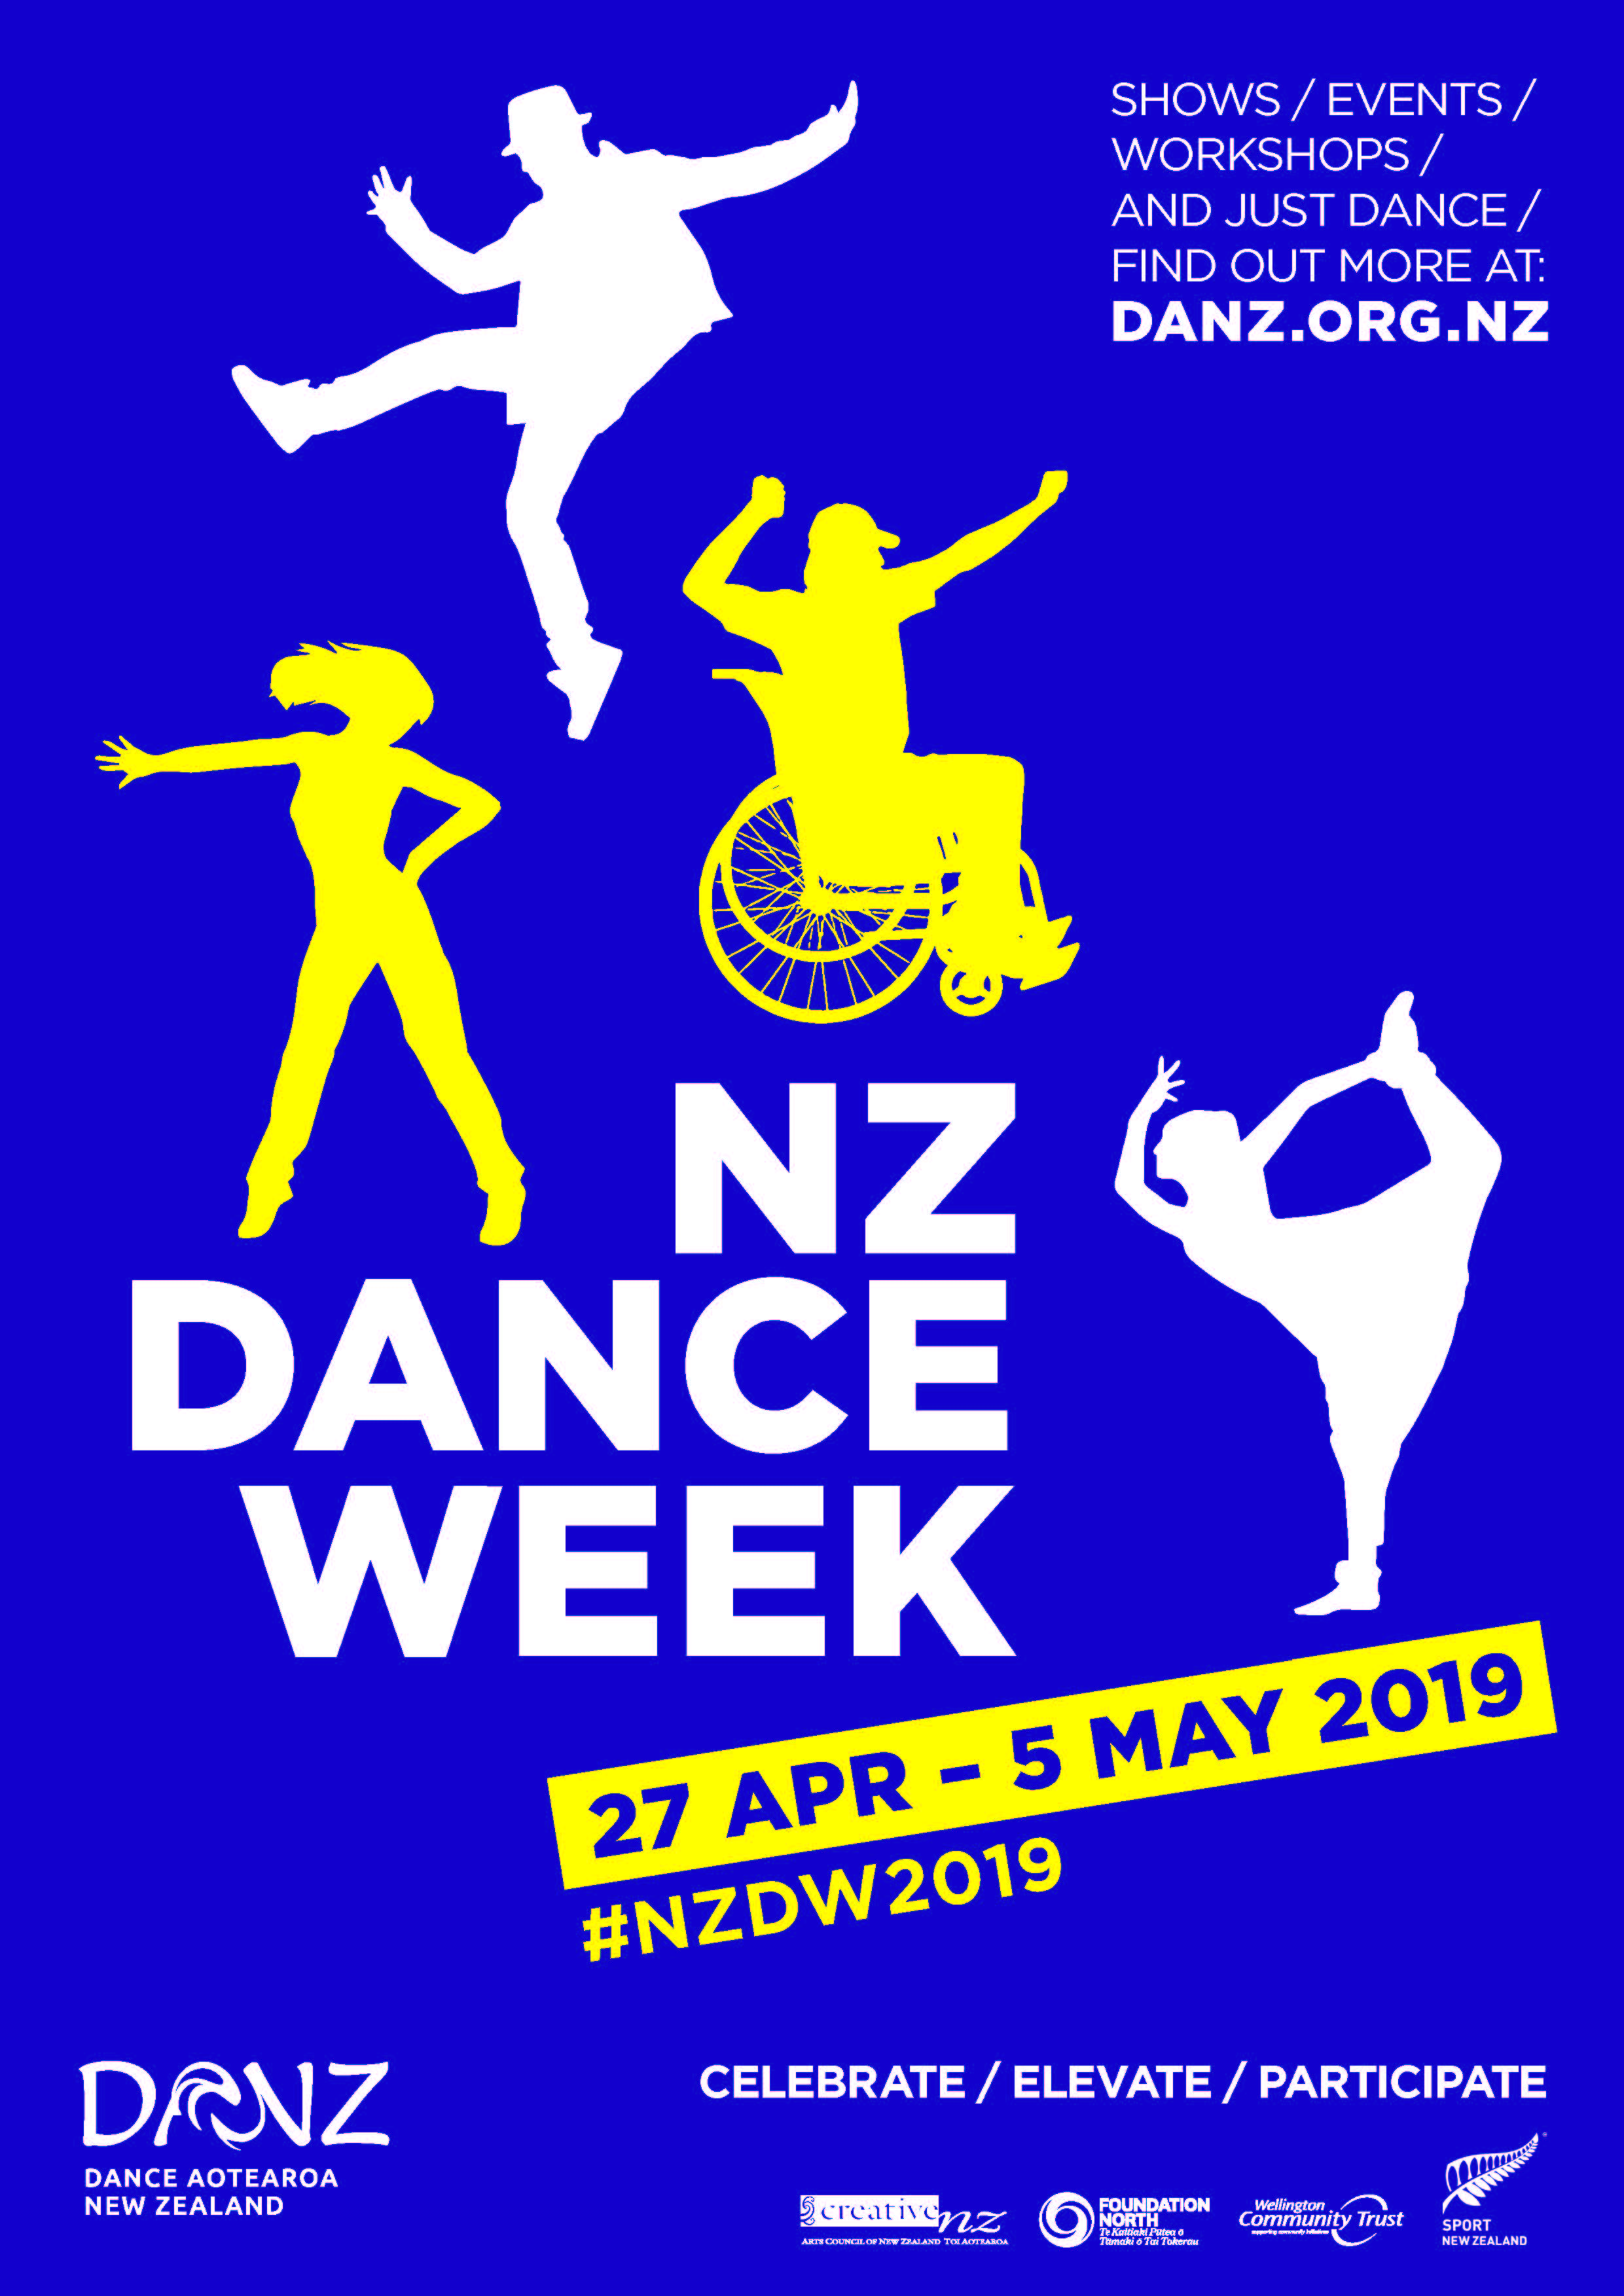 DANZ Dance Week 2019 poster A4_007_no crops.jpg